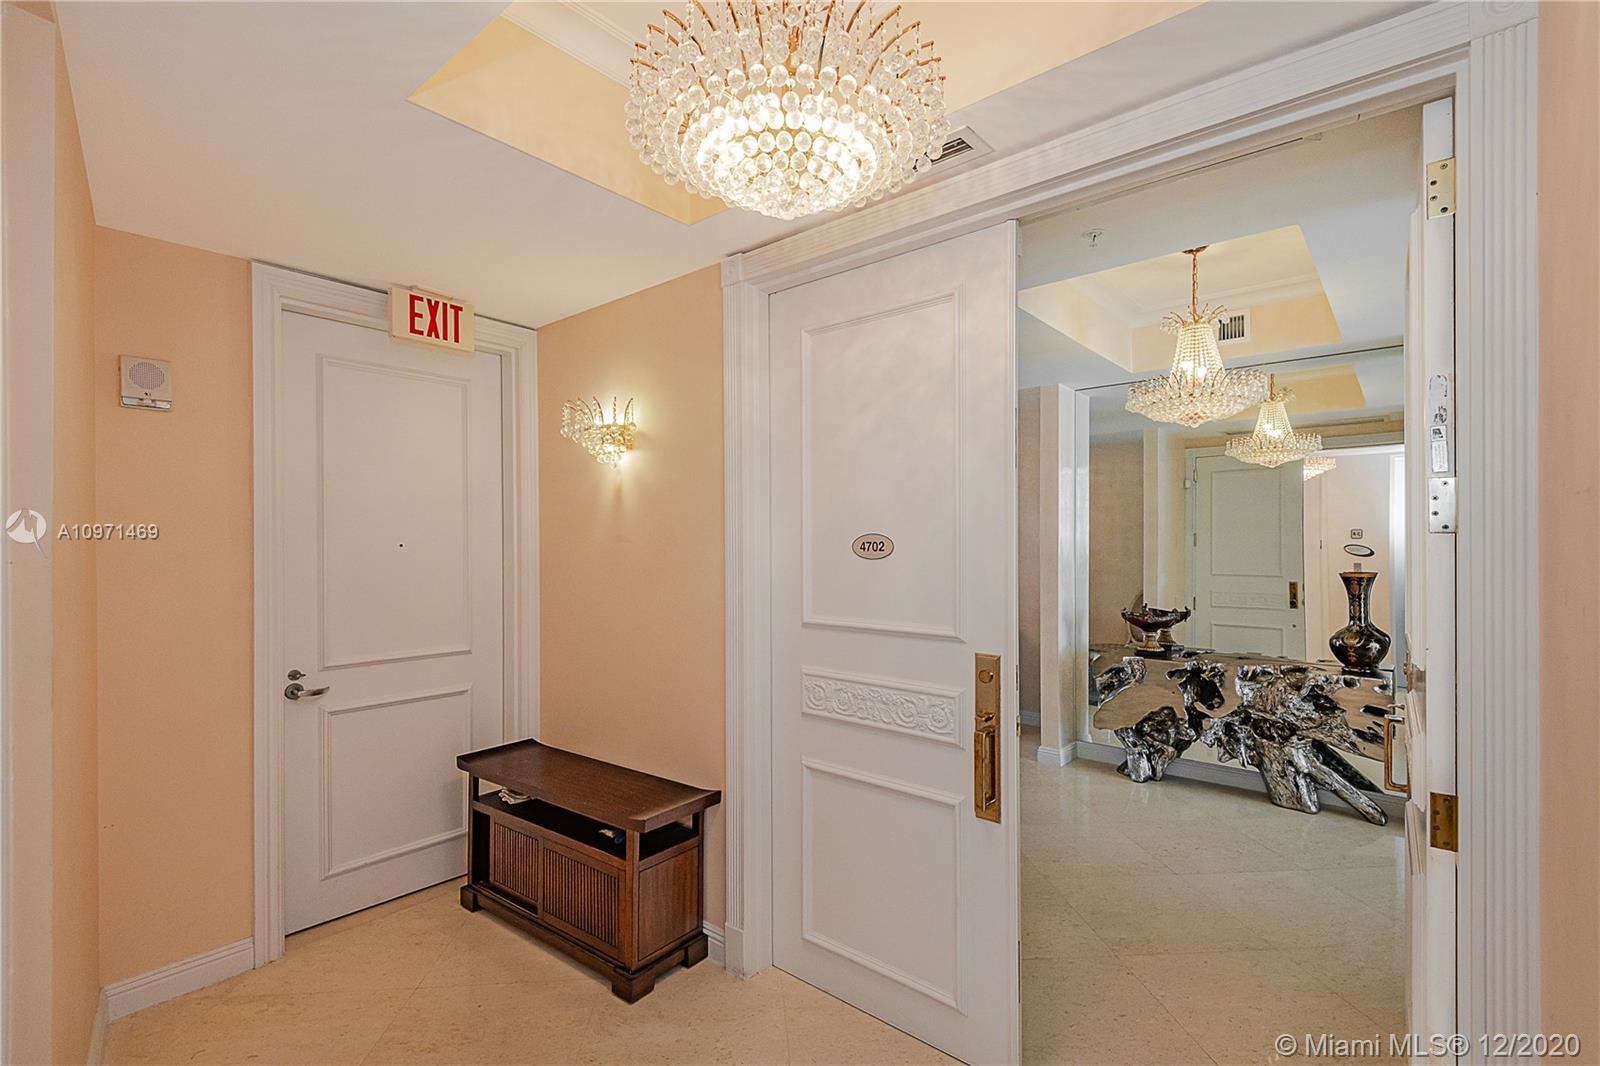 18101 Collins Ave #4702, Sunny Isles, FL 33160 - #: A10971469